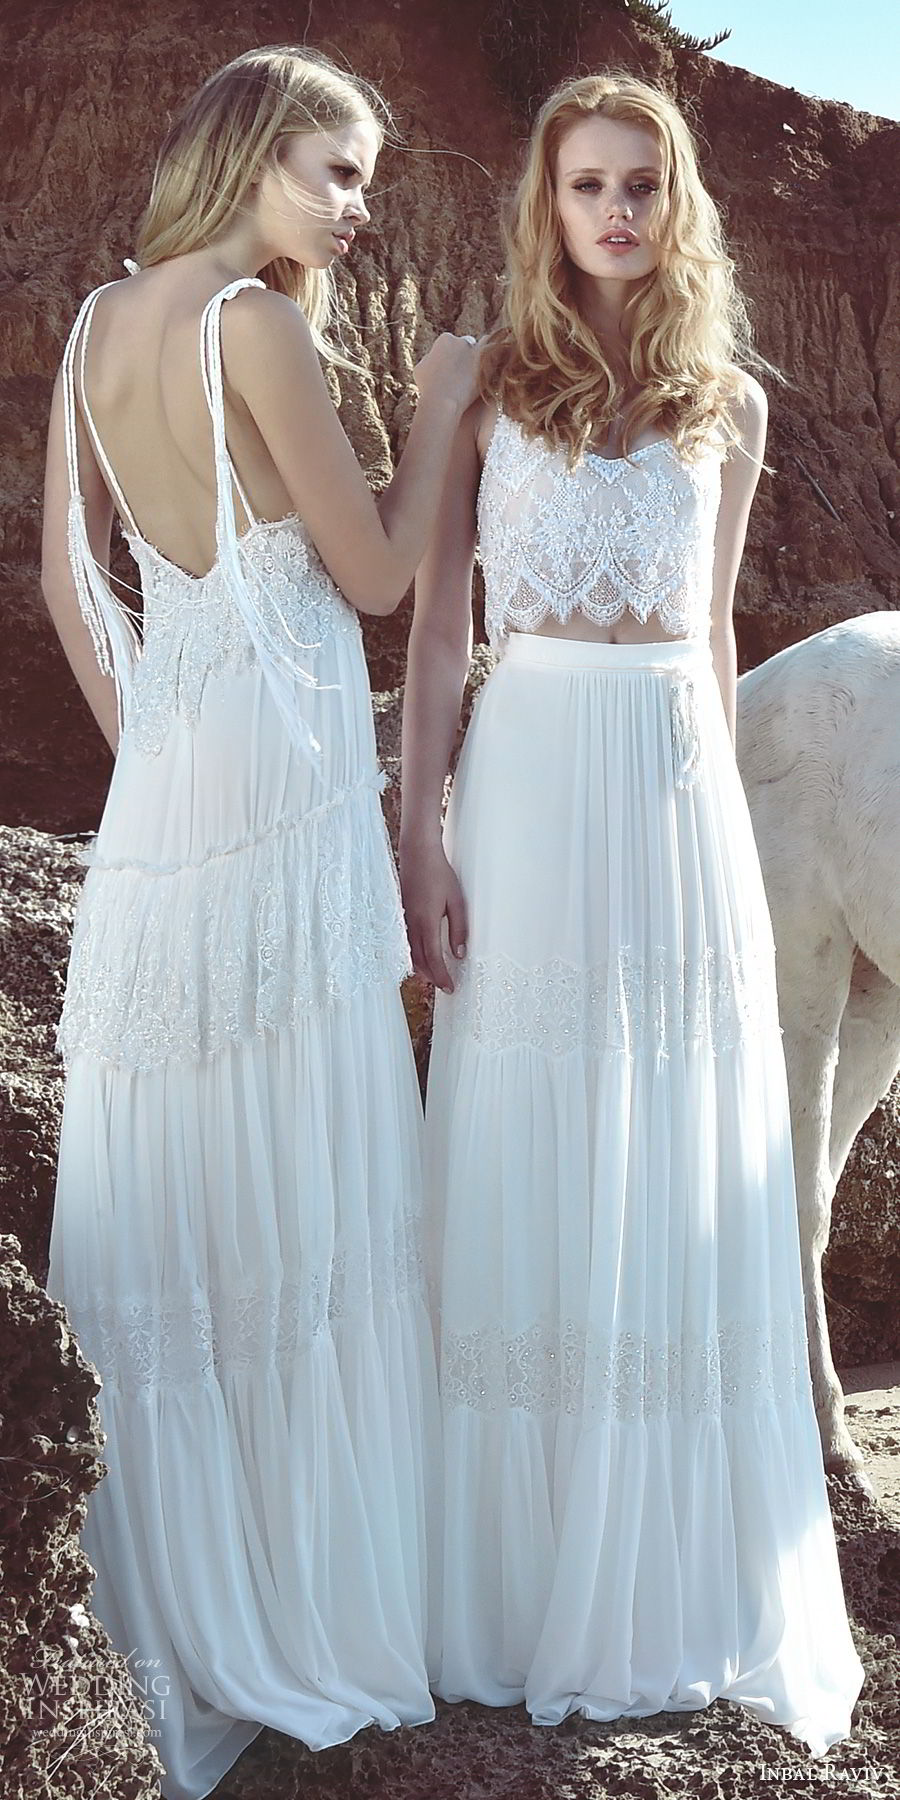 Inbal Raviv 2017 Wedding Dresses - us42